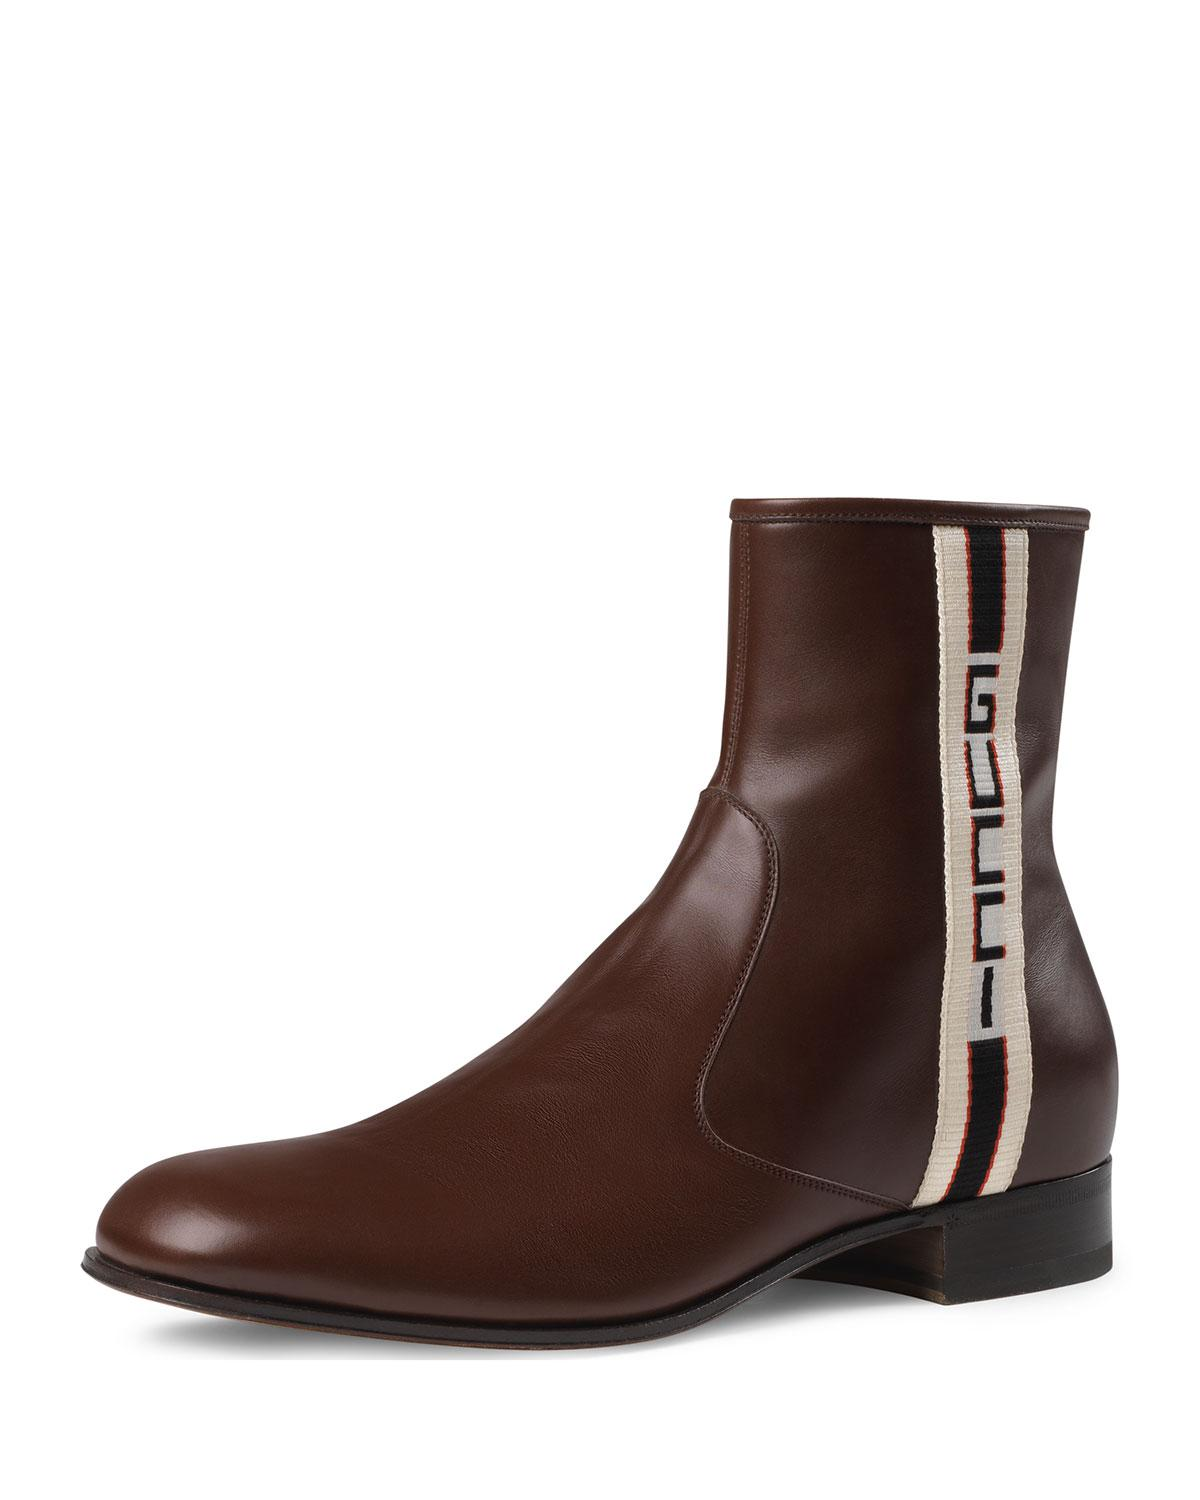 1e8ff6595fd Gucci Stripe Leather Boot in Brown for Men - Lyst